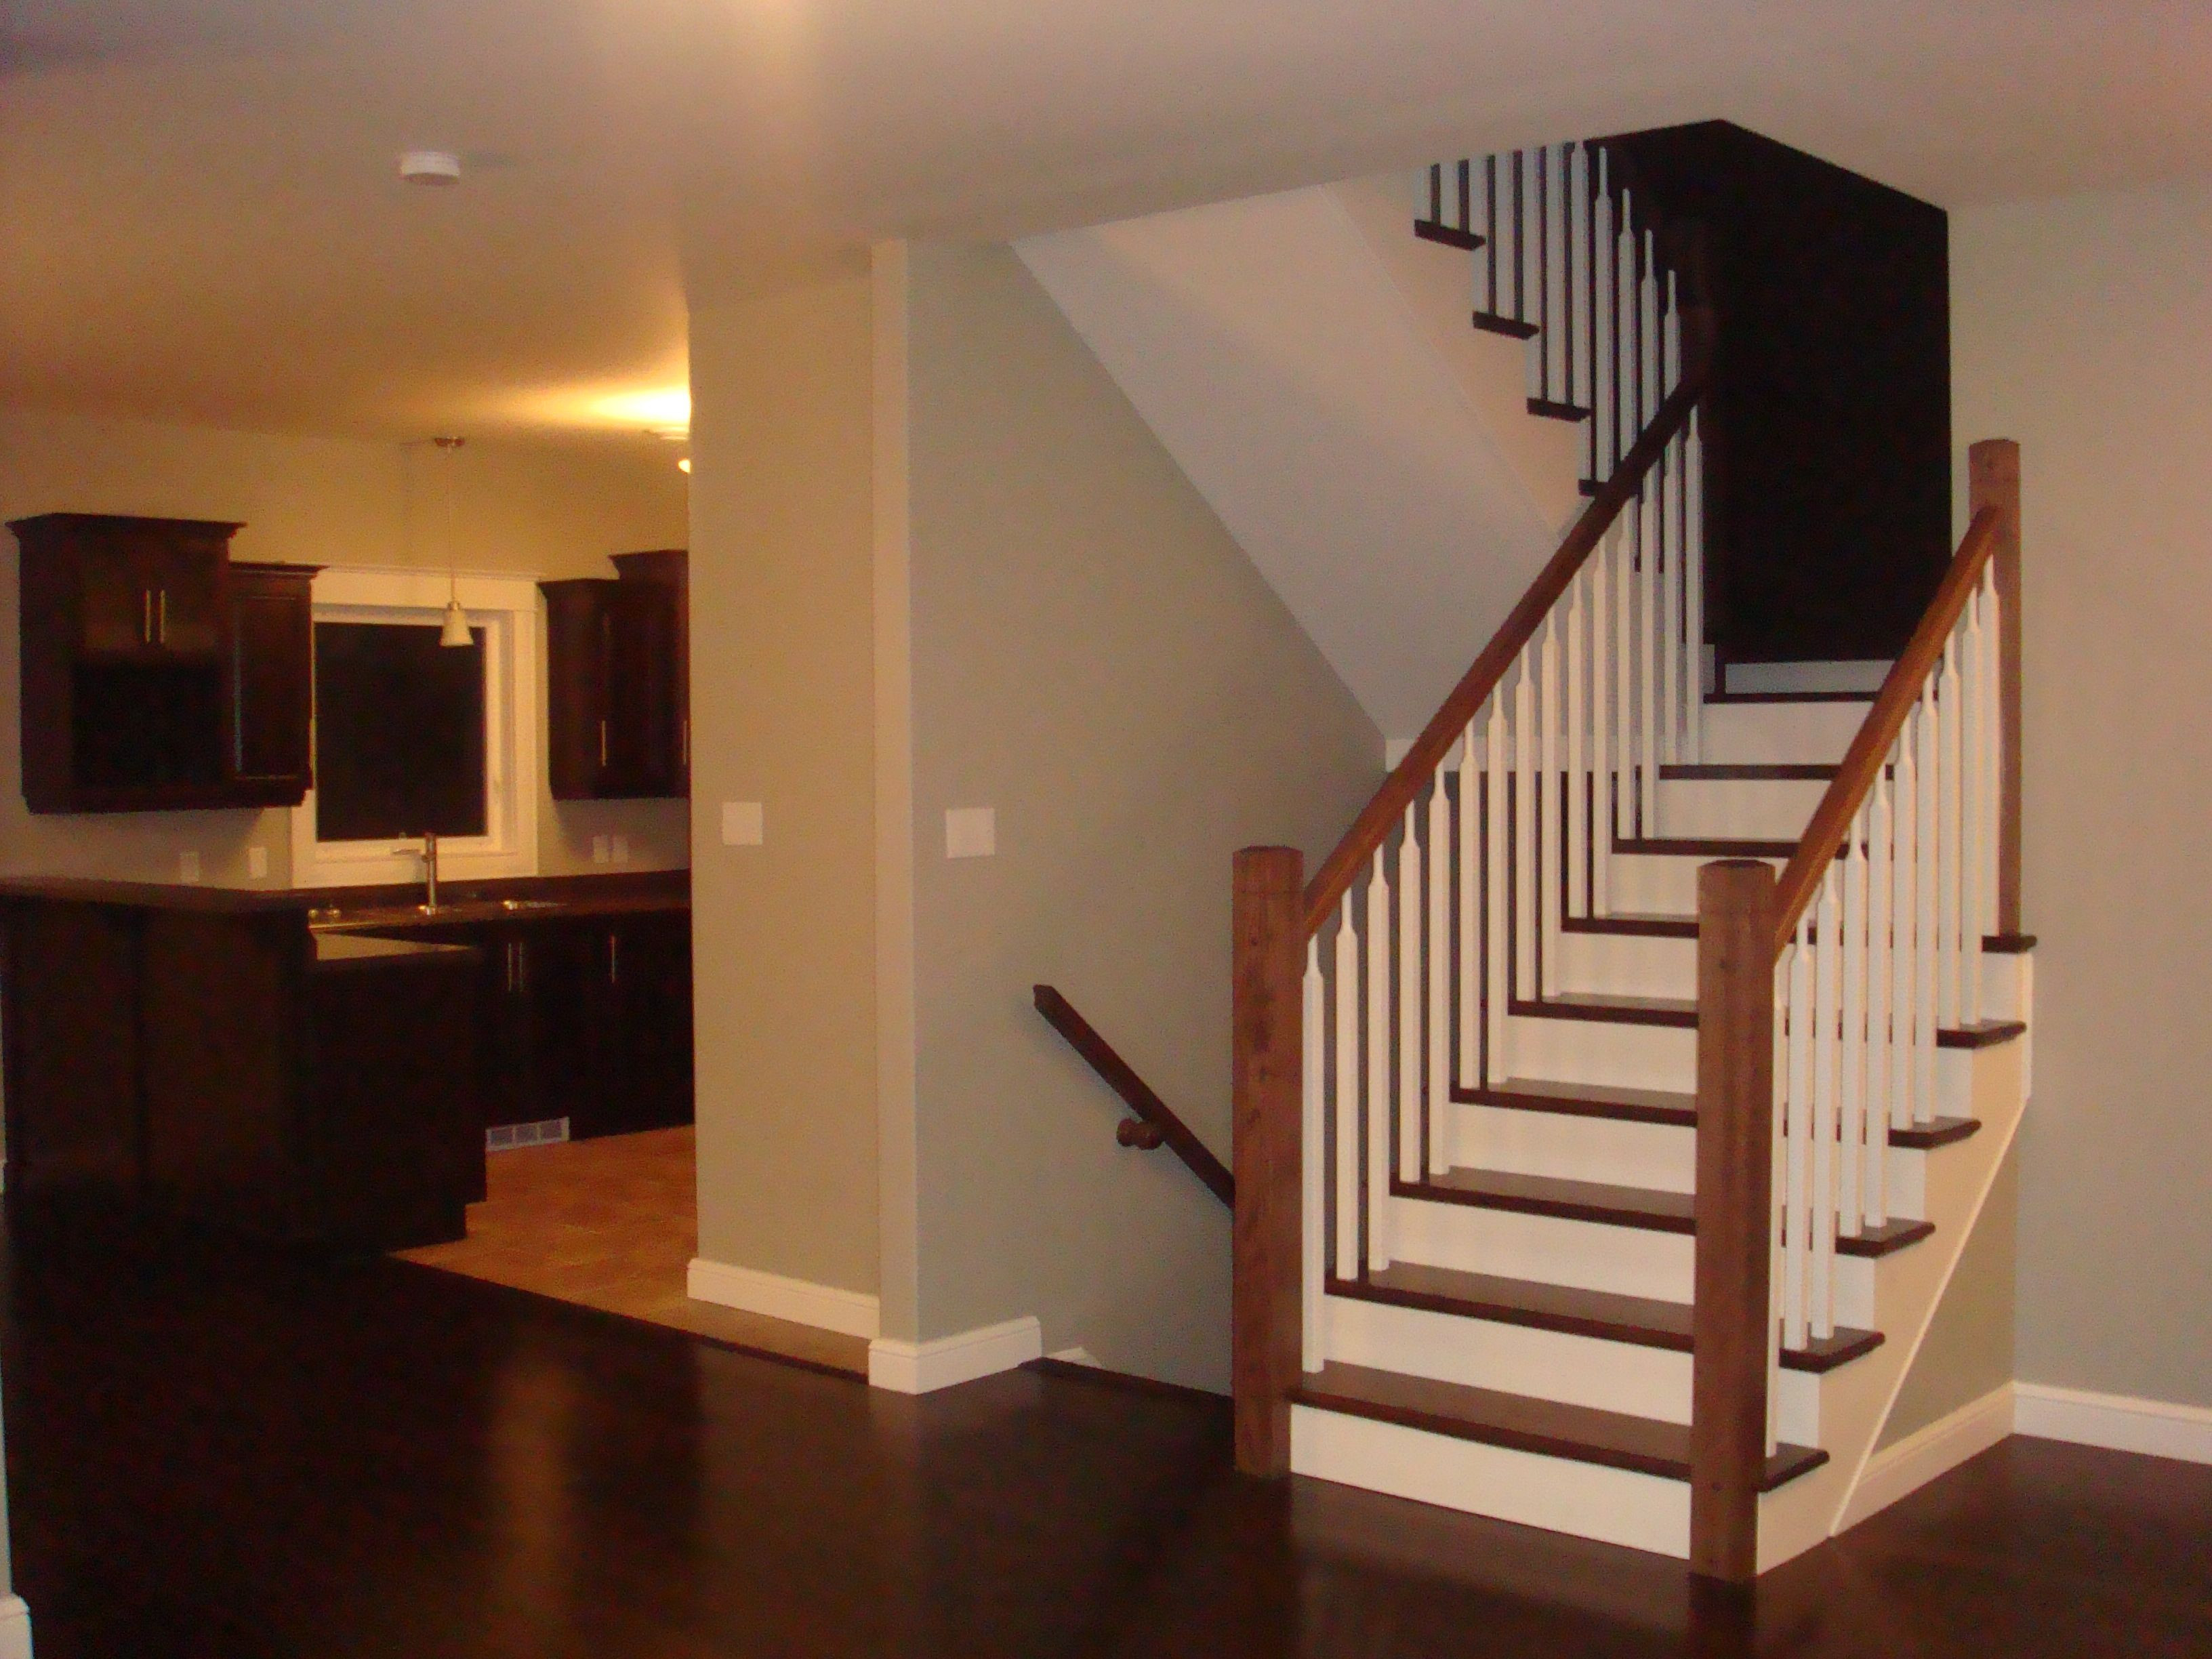 bd hardwood floors of i would love our stairs to look like these two tone hardwood stairs for i would love our stairs to look like these two tone hardwood stairs